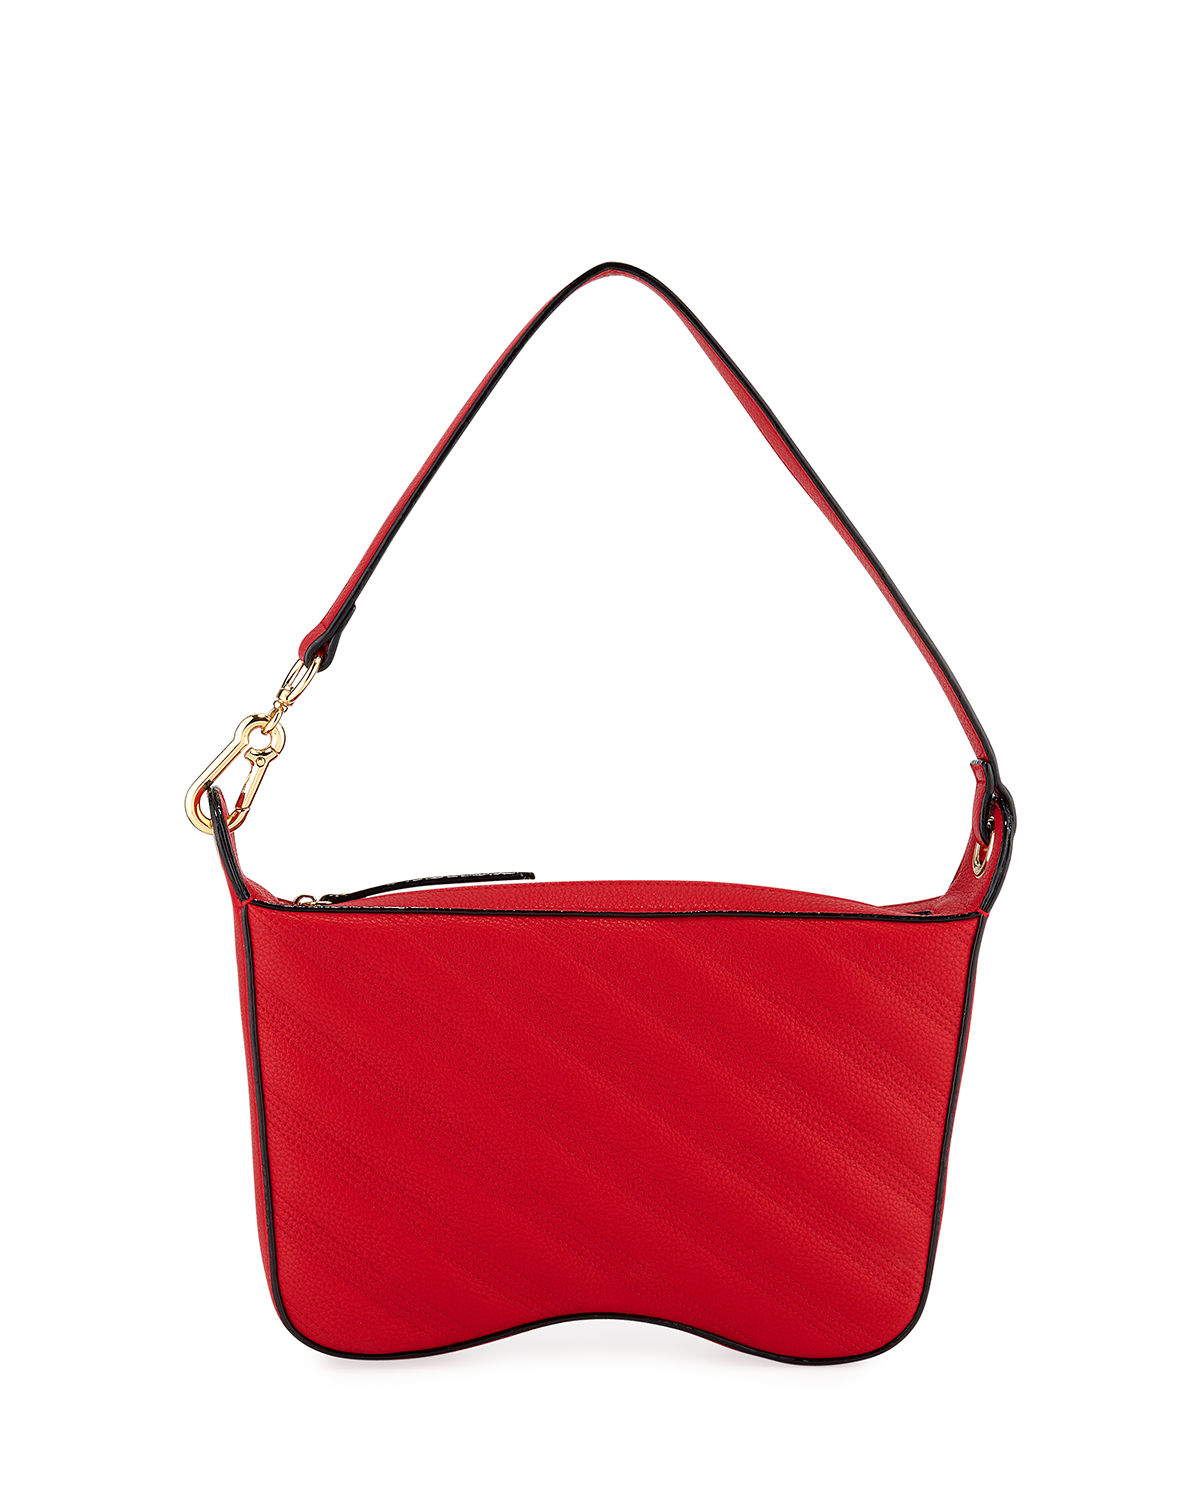 Naomi Quilted Double Saddle Shoulder Bag